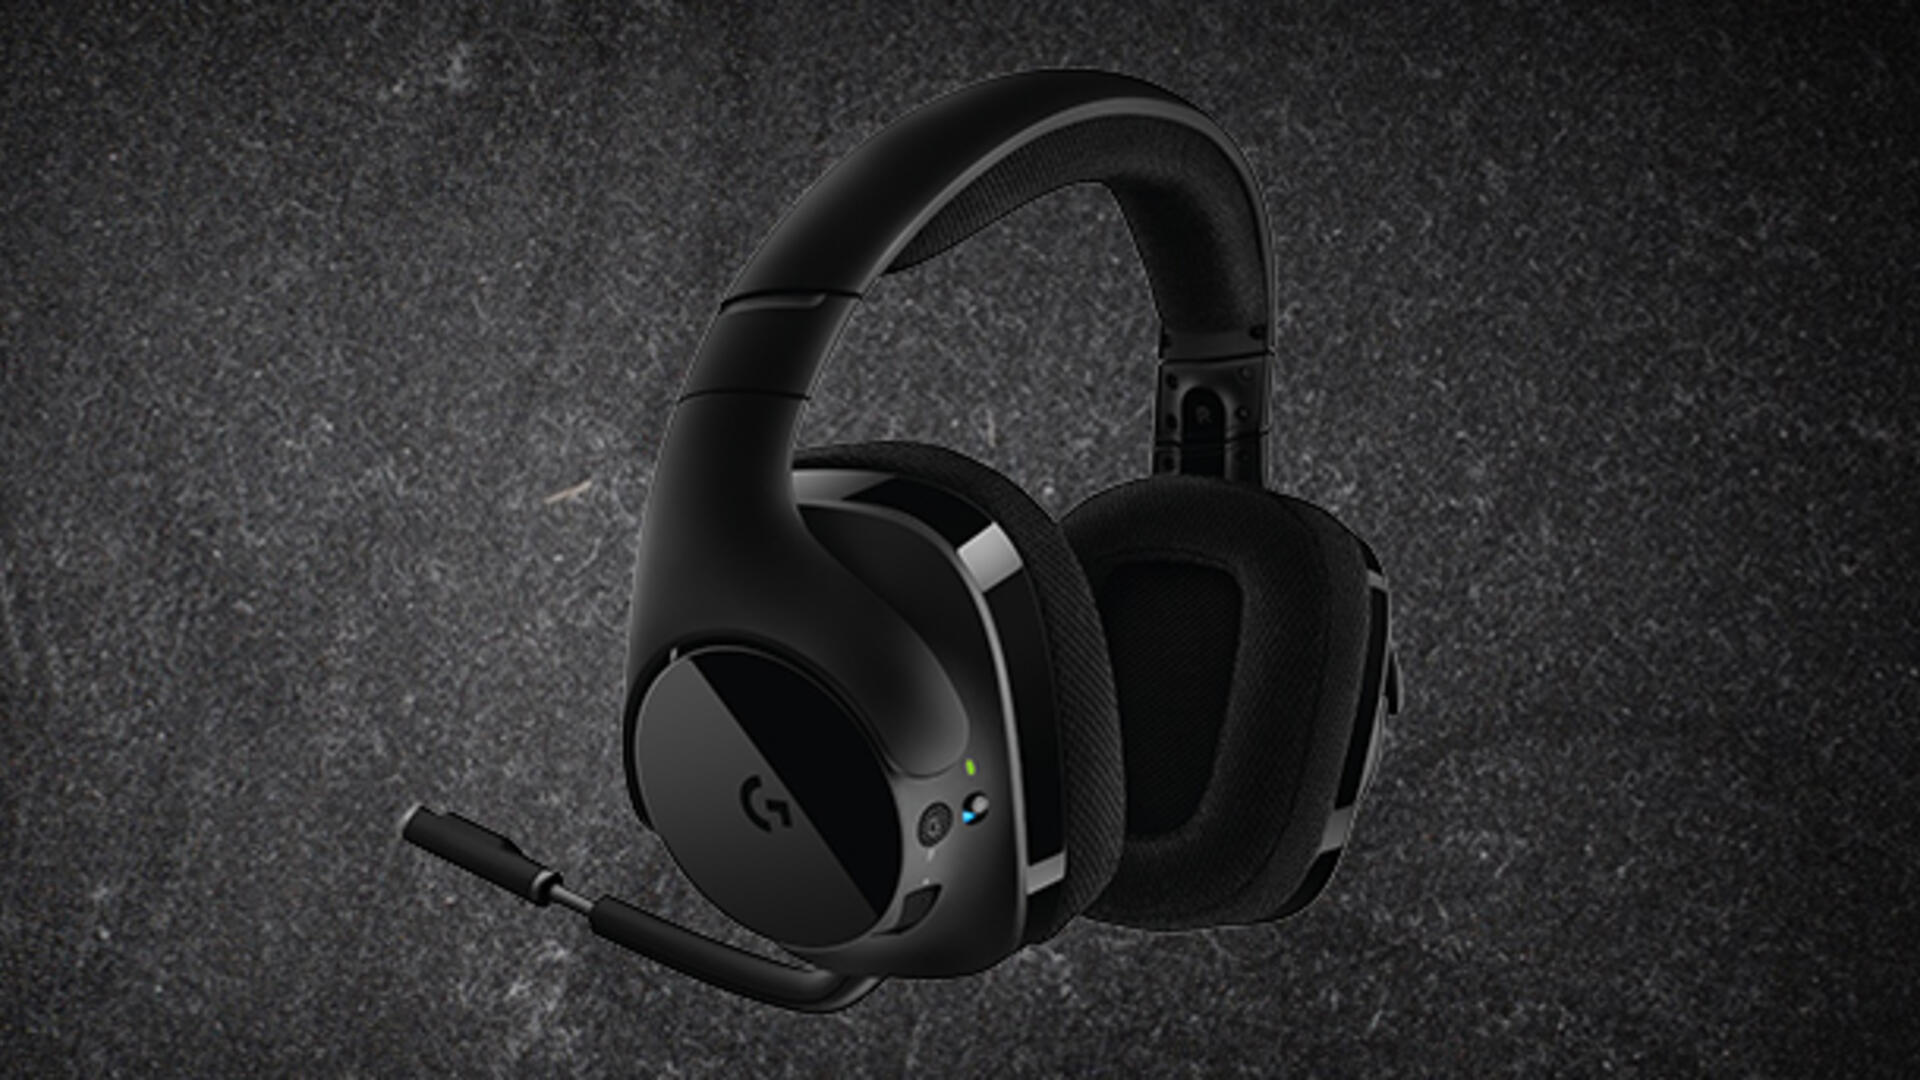 Logitech G533 Headset Review: Elegant Simplicity in a Gaming